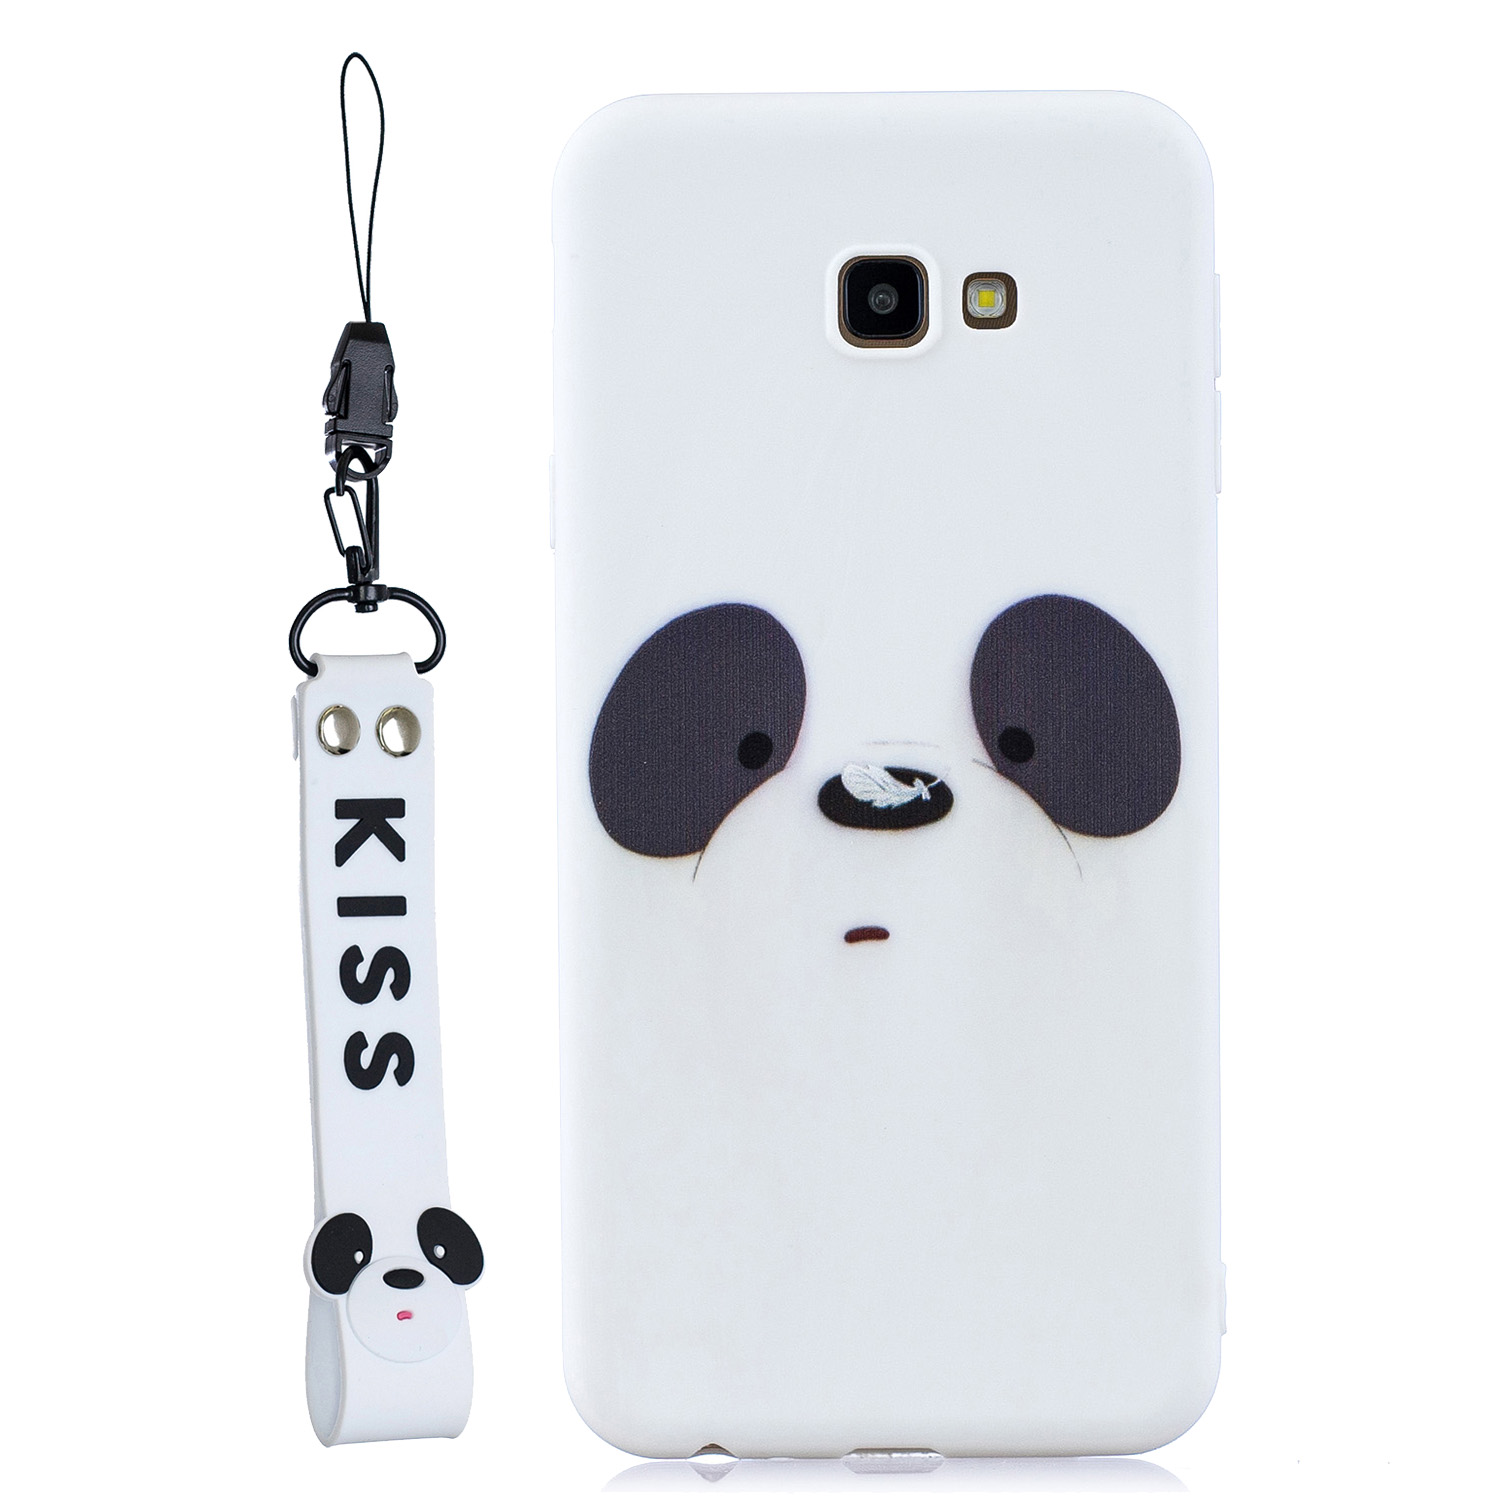 For Samsung J4 plus Cute Coloured Painted TPU Anti-scratch Non-slip Protective Cover Back Case with Lanyard white